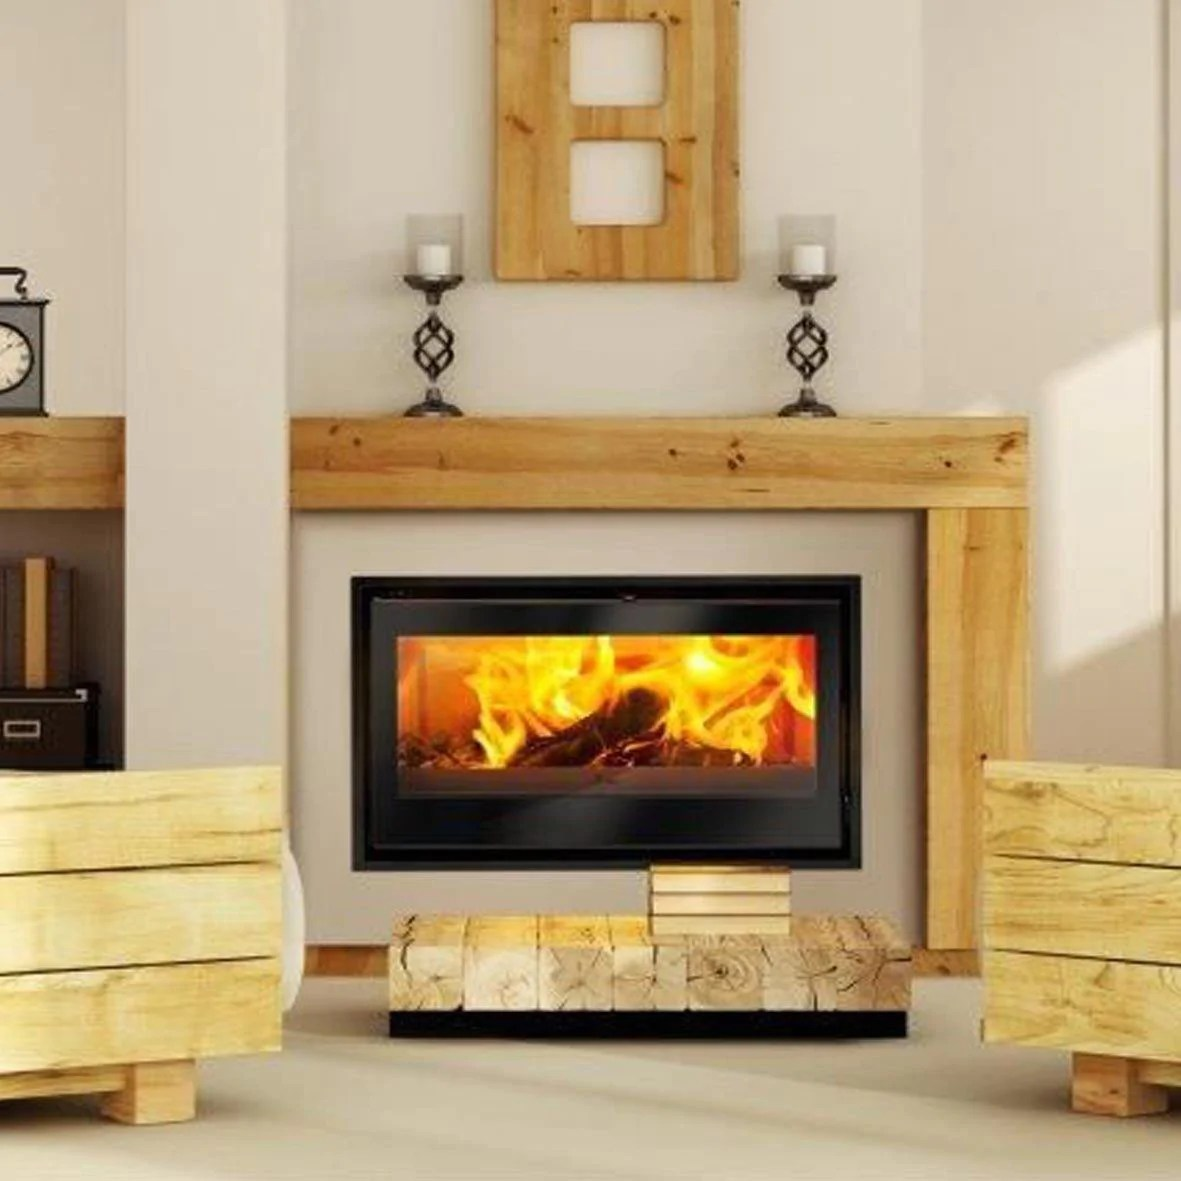 Lacunza Aroa 700 Built In Fireplace 10 13kw Multifire Fireplace Specialists